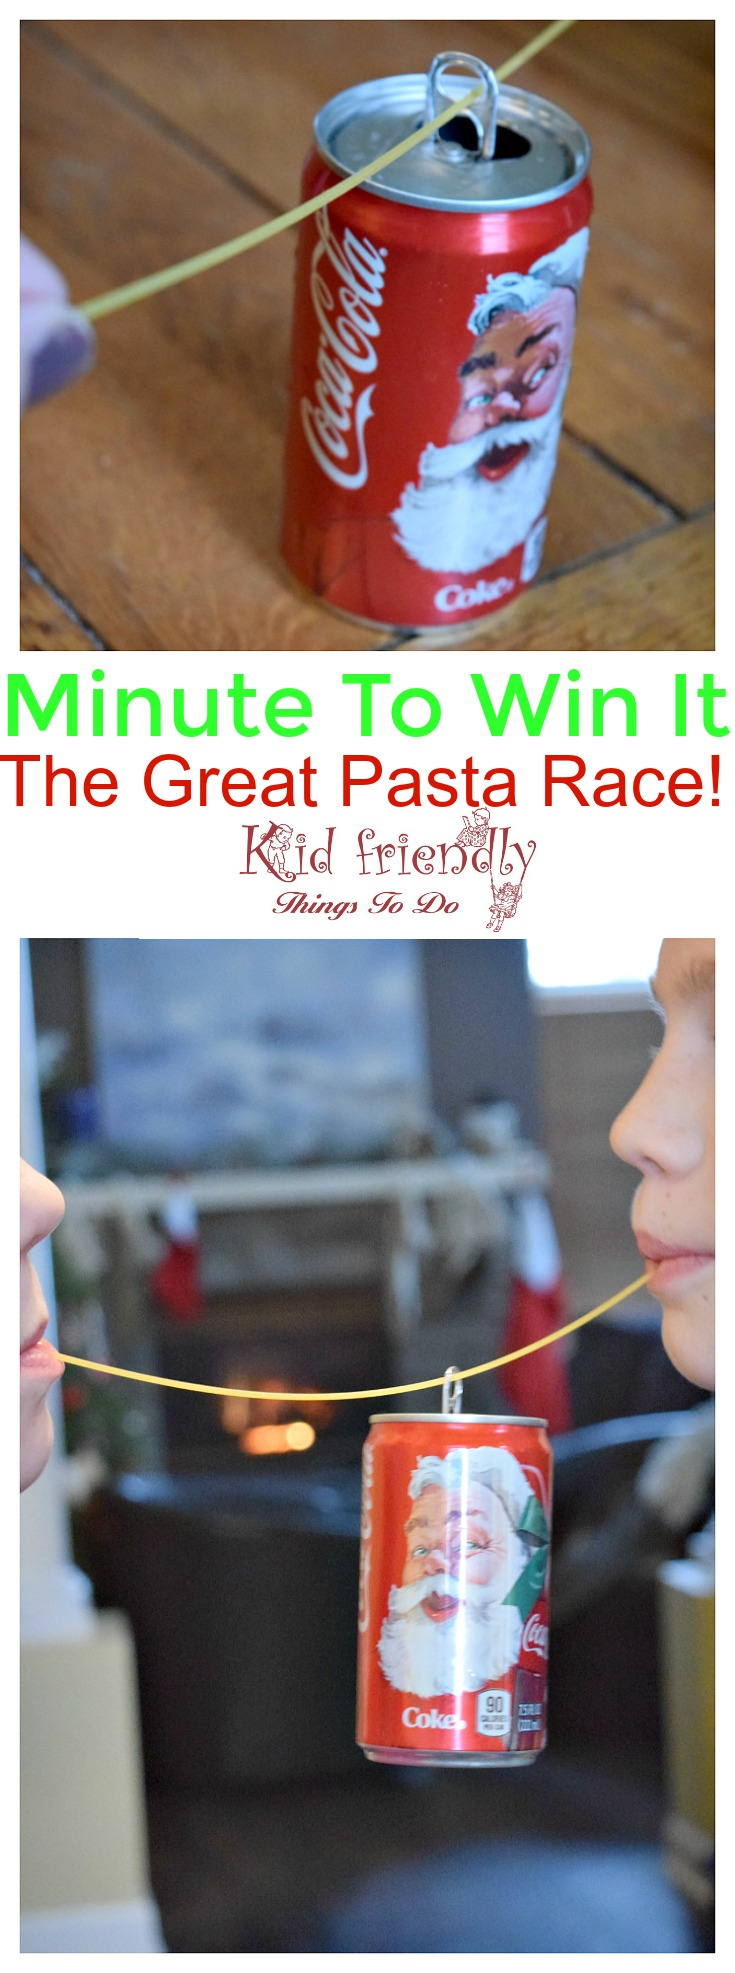 Minute to Win It Pasta Race